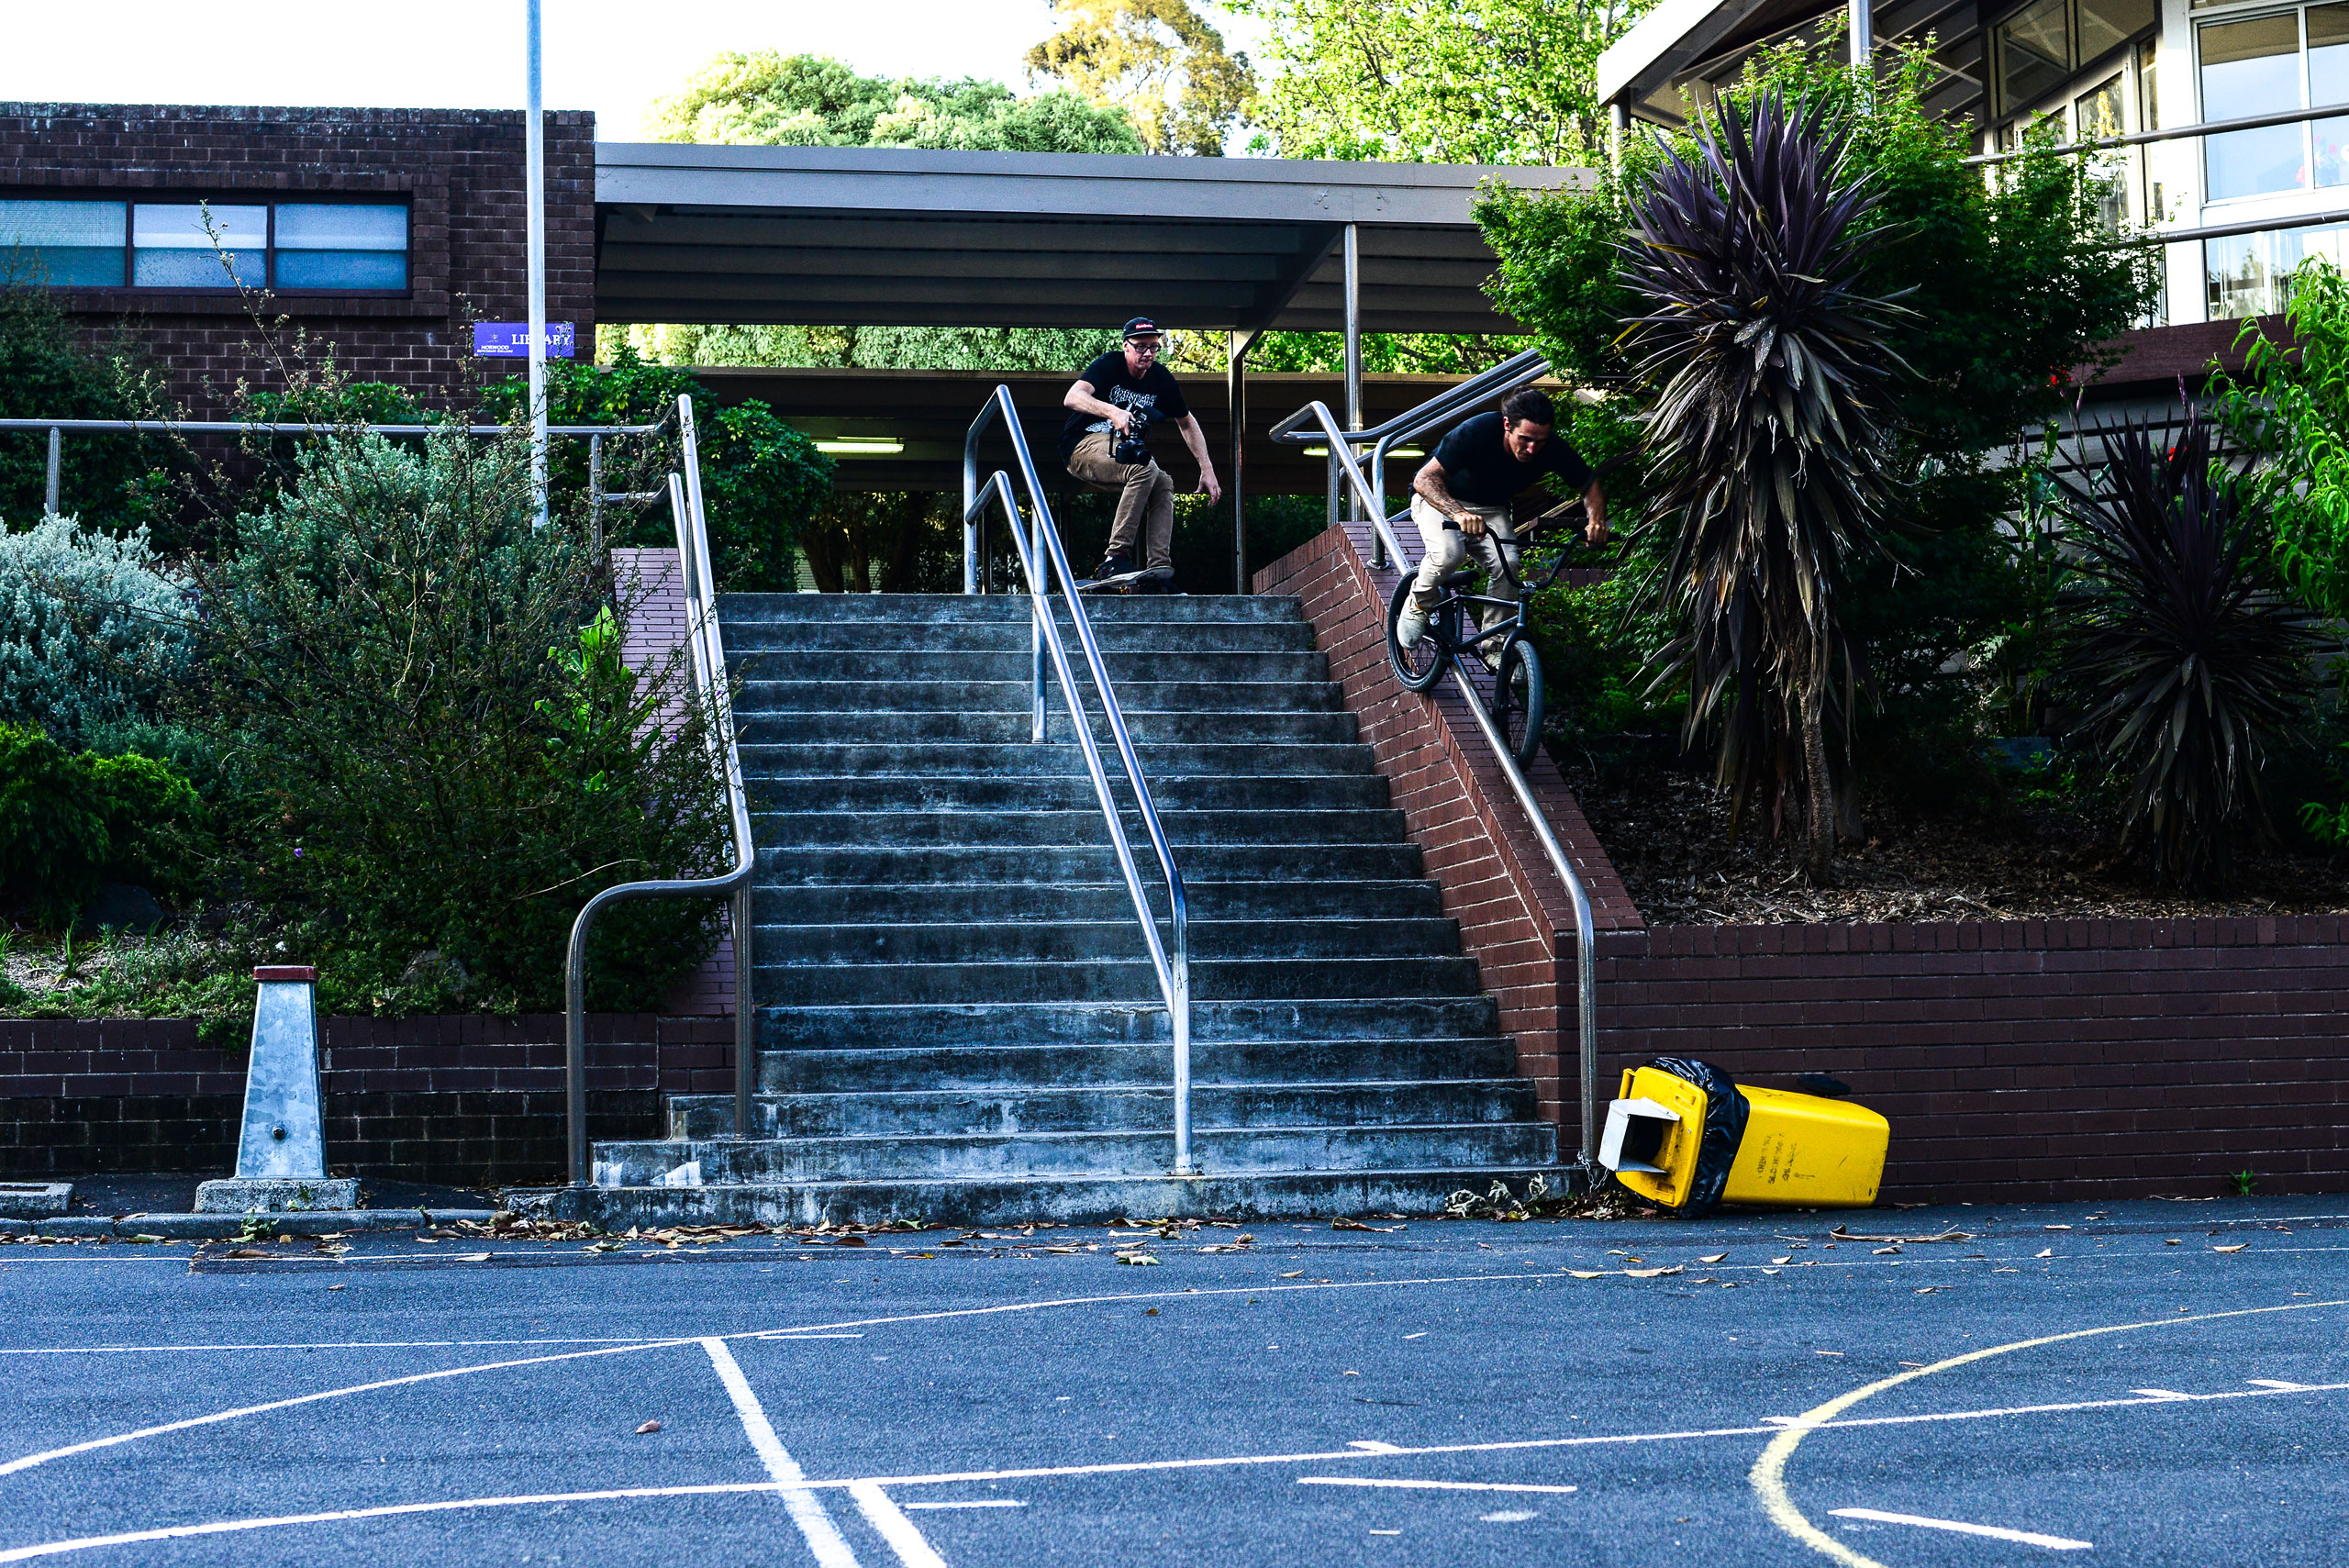 zac-feeble-norwood_LR